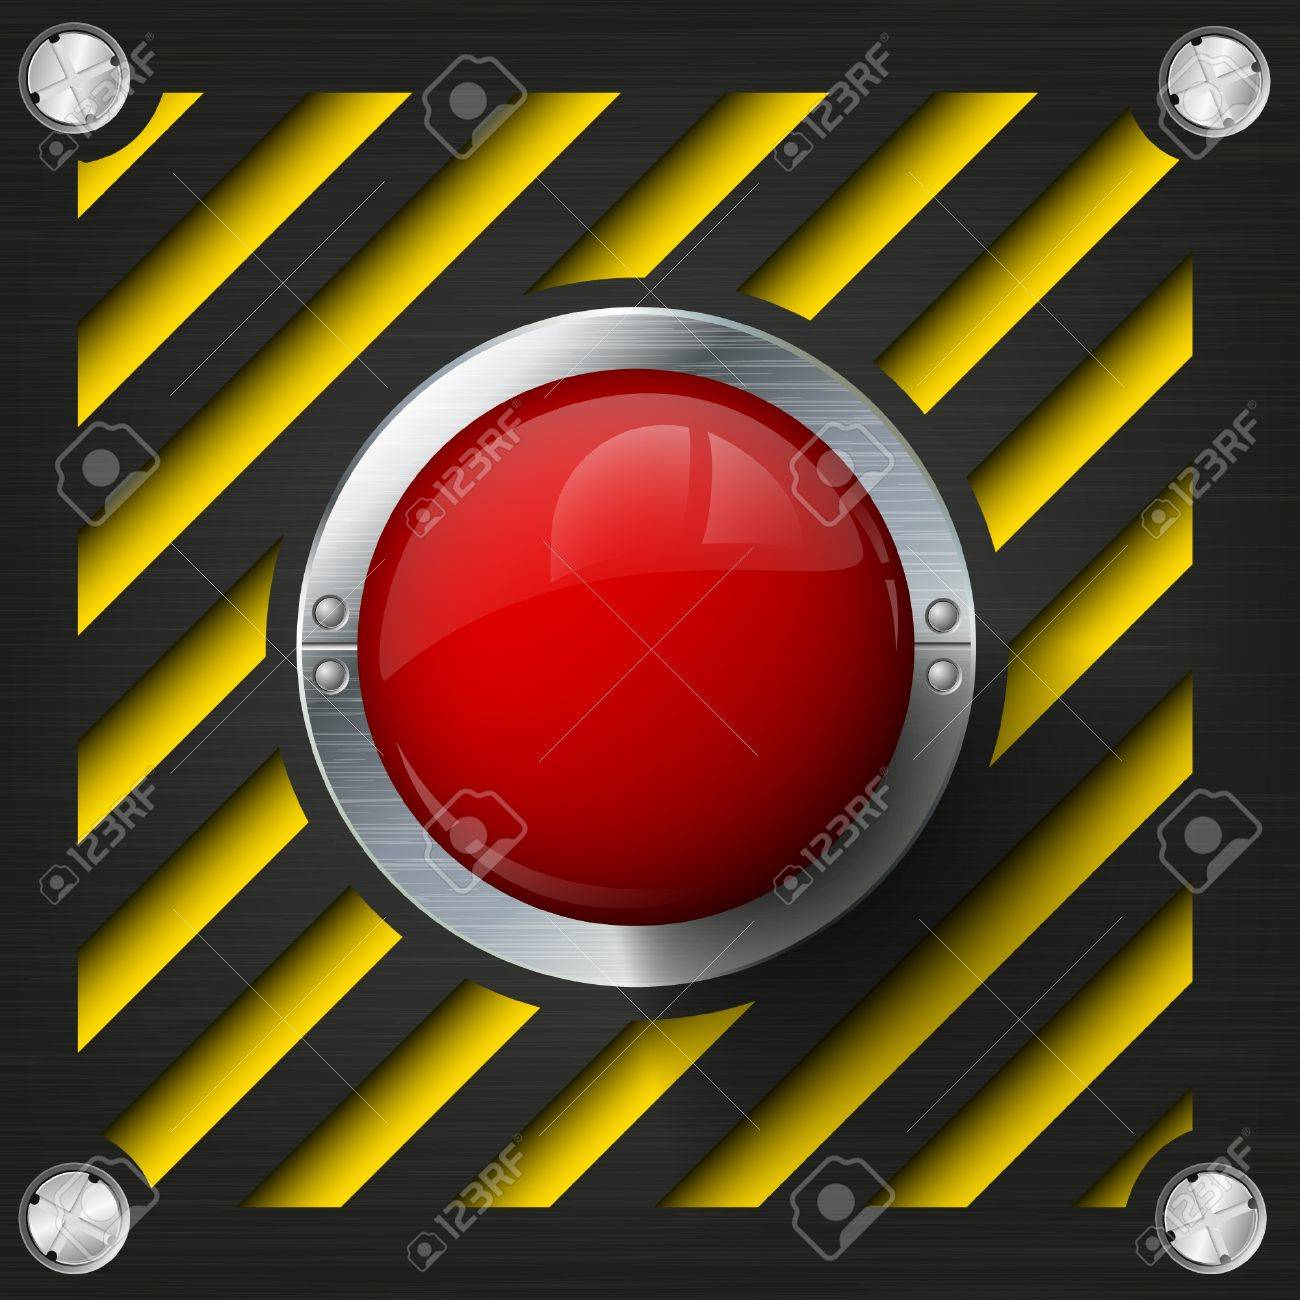 Emergency stop icon clipart emergency off - Red Alarm Shiny Button On A Tech Beckground Stock Vector 14182073